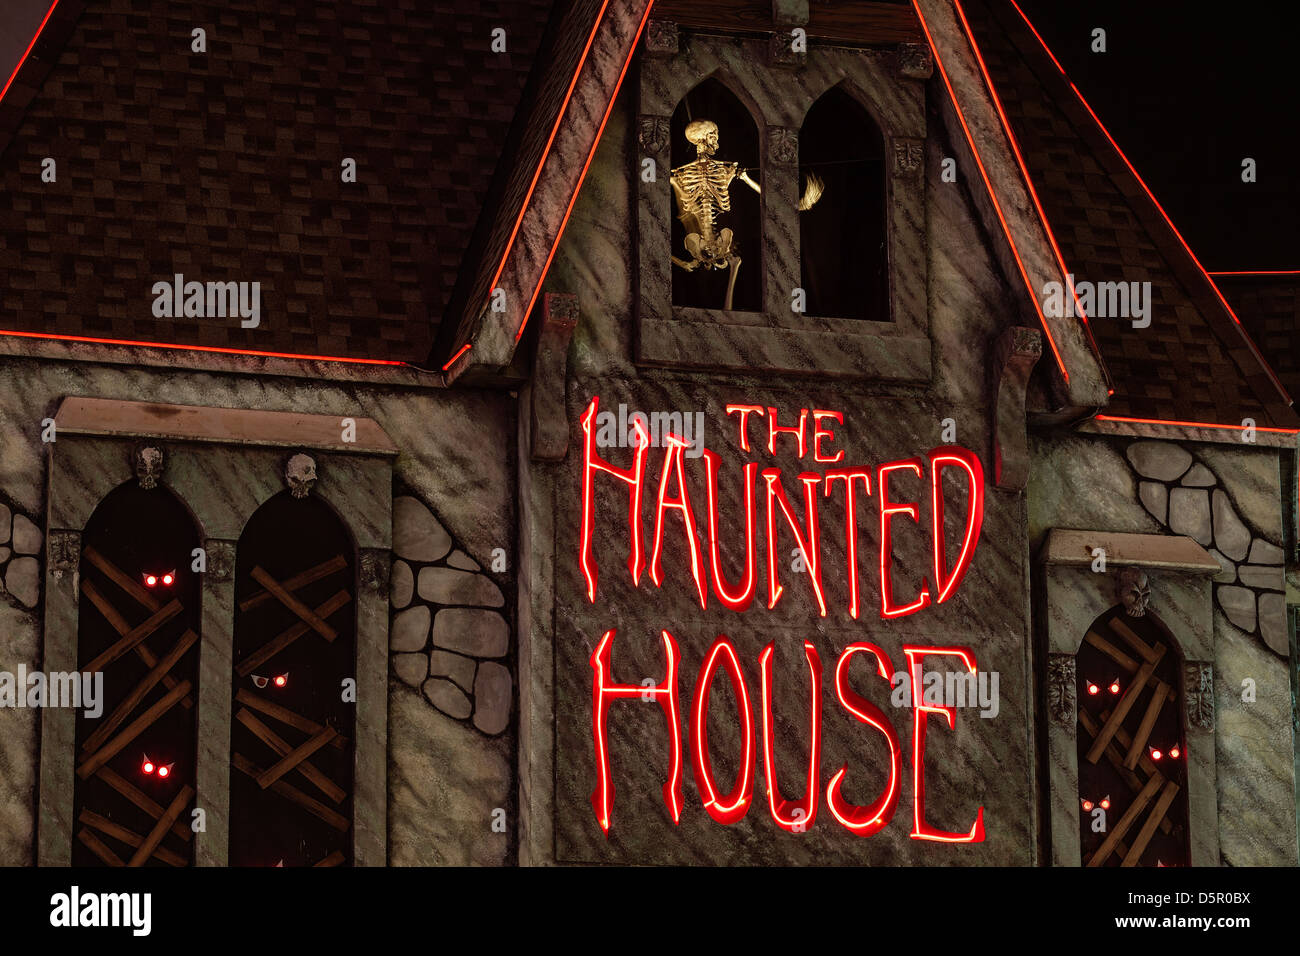 Haunted House di notte Immagini Stock